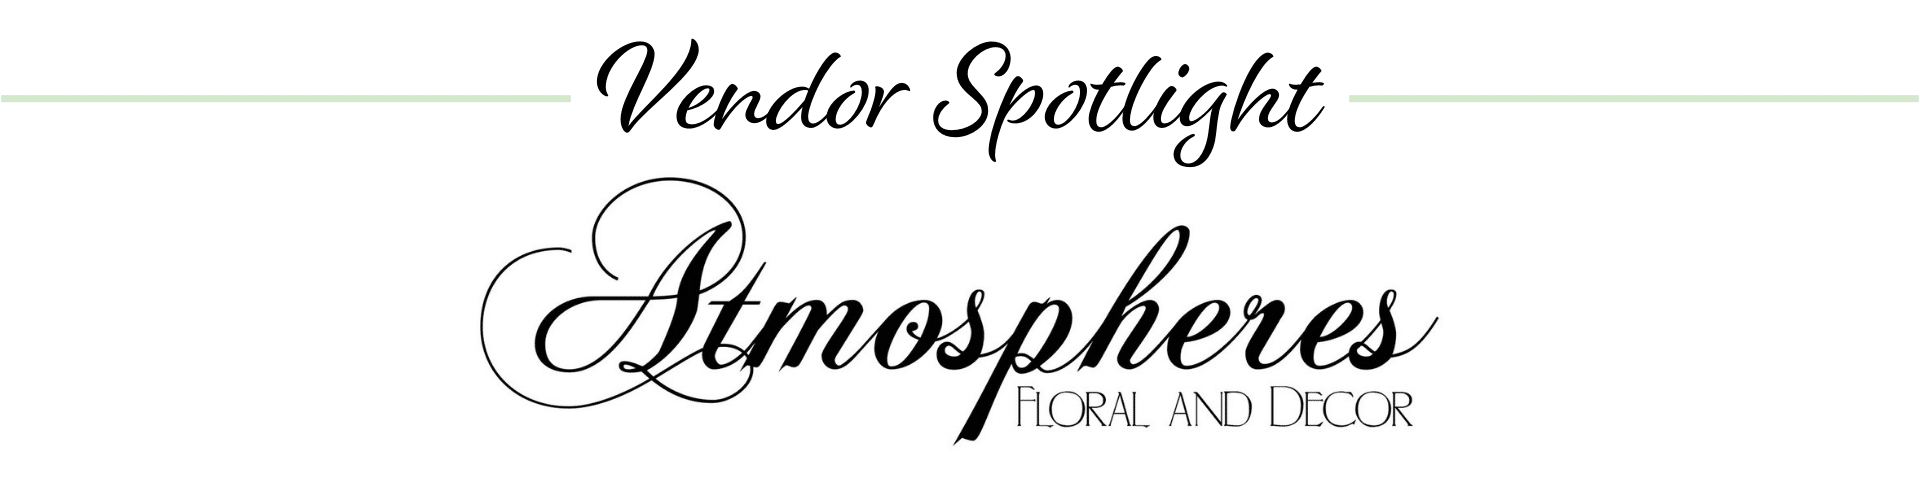 Atmospheres Floral and Decor logo